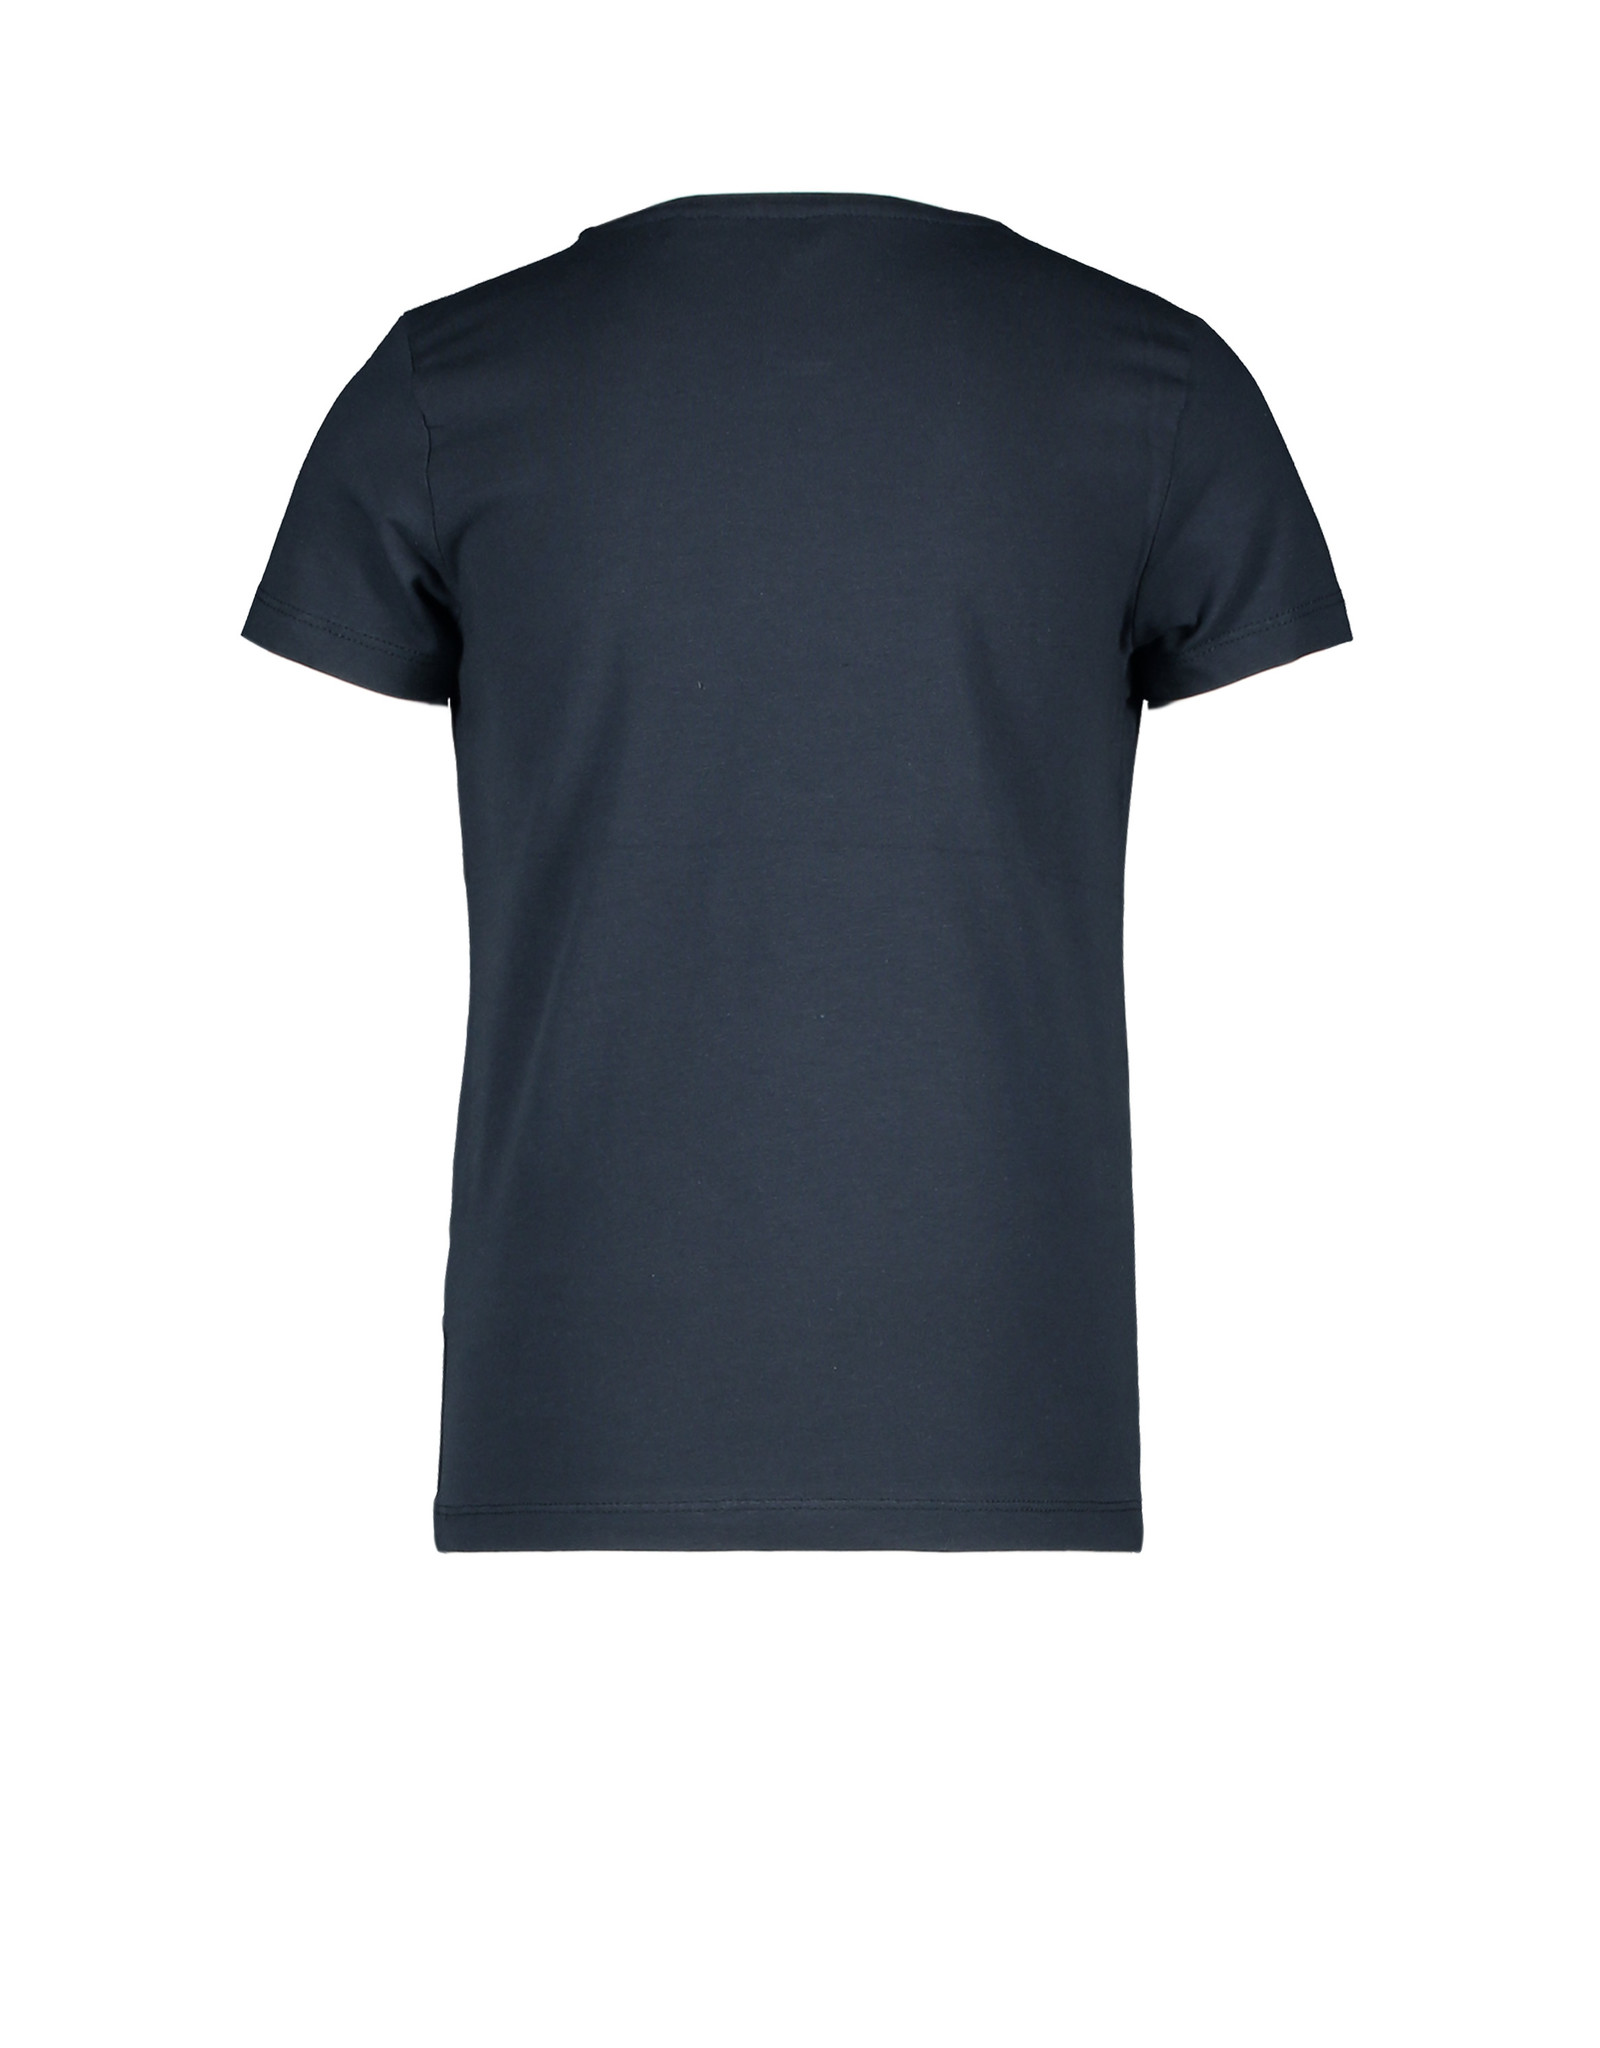 Moodstreet MT t-shirt, Navy